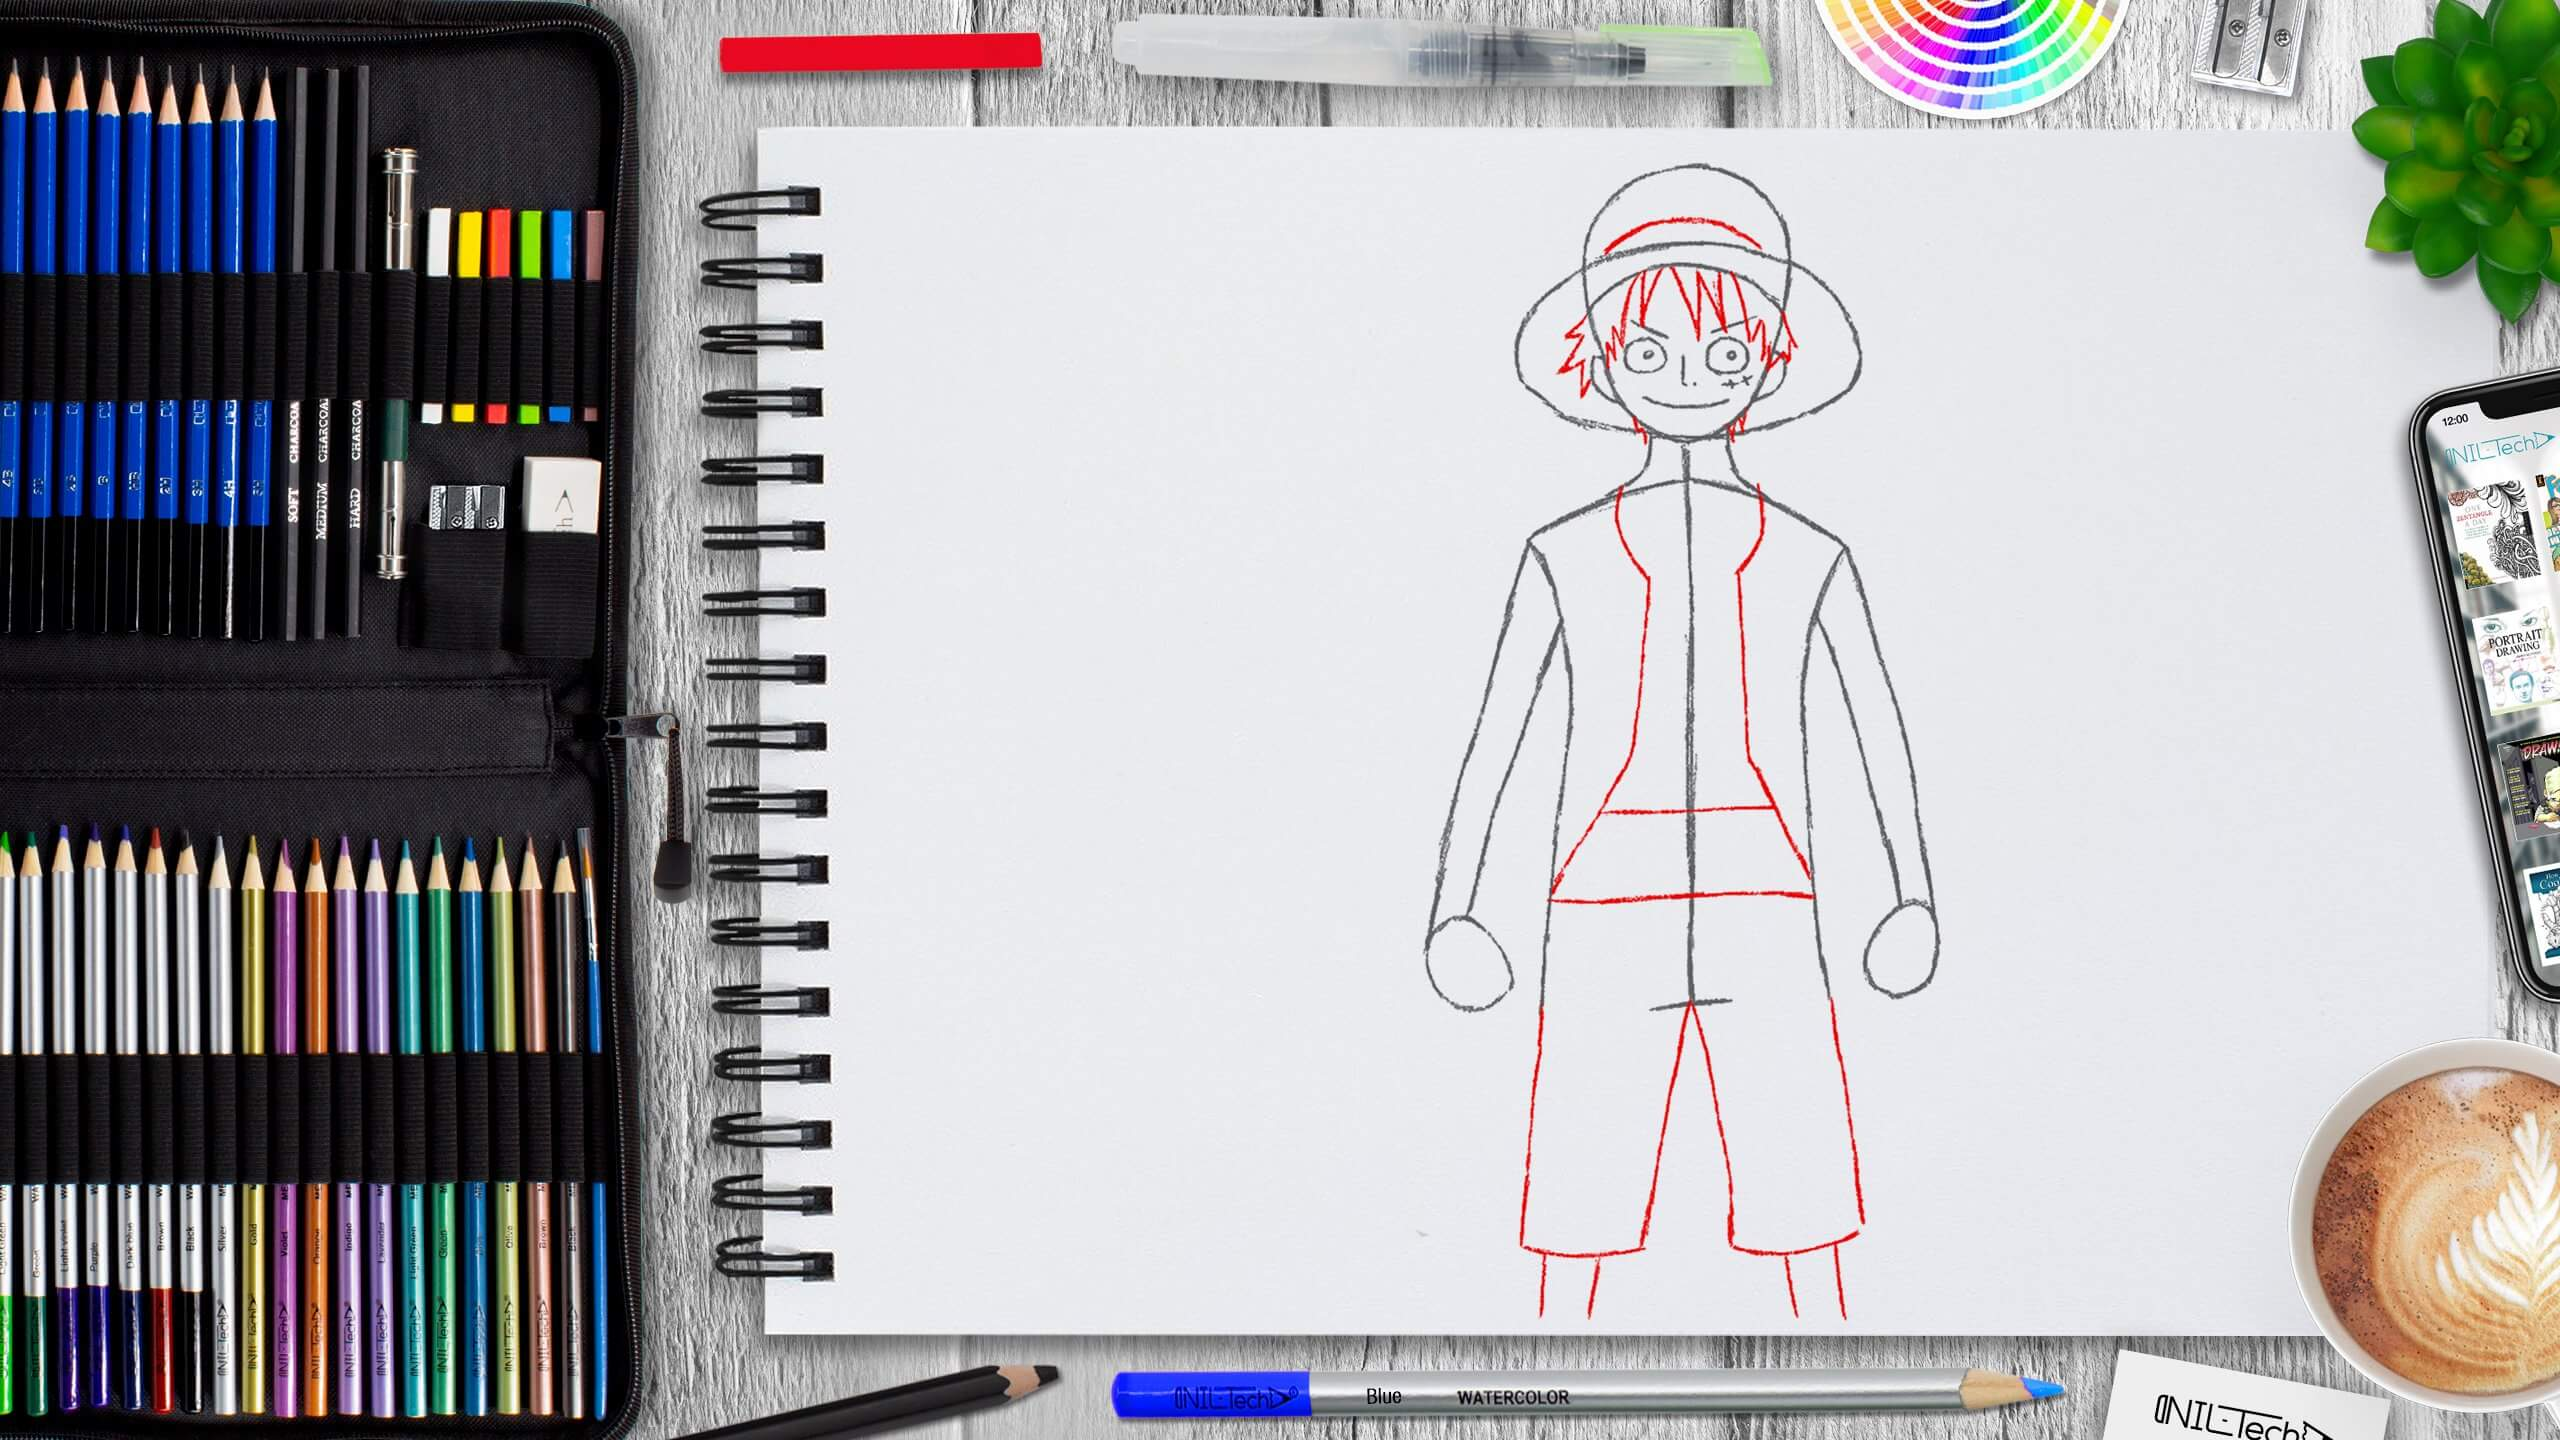 Luffy from one piece pencil drawing tutorial